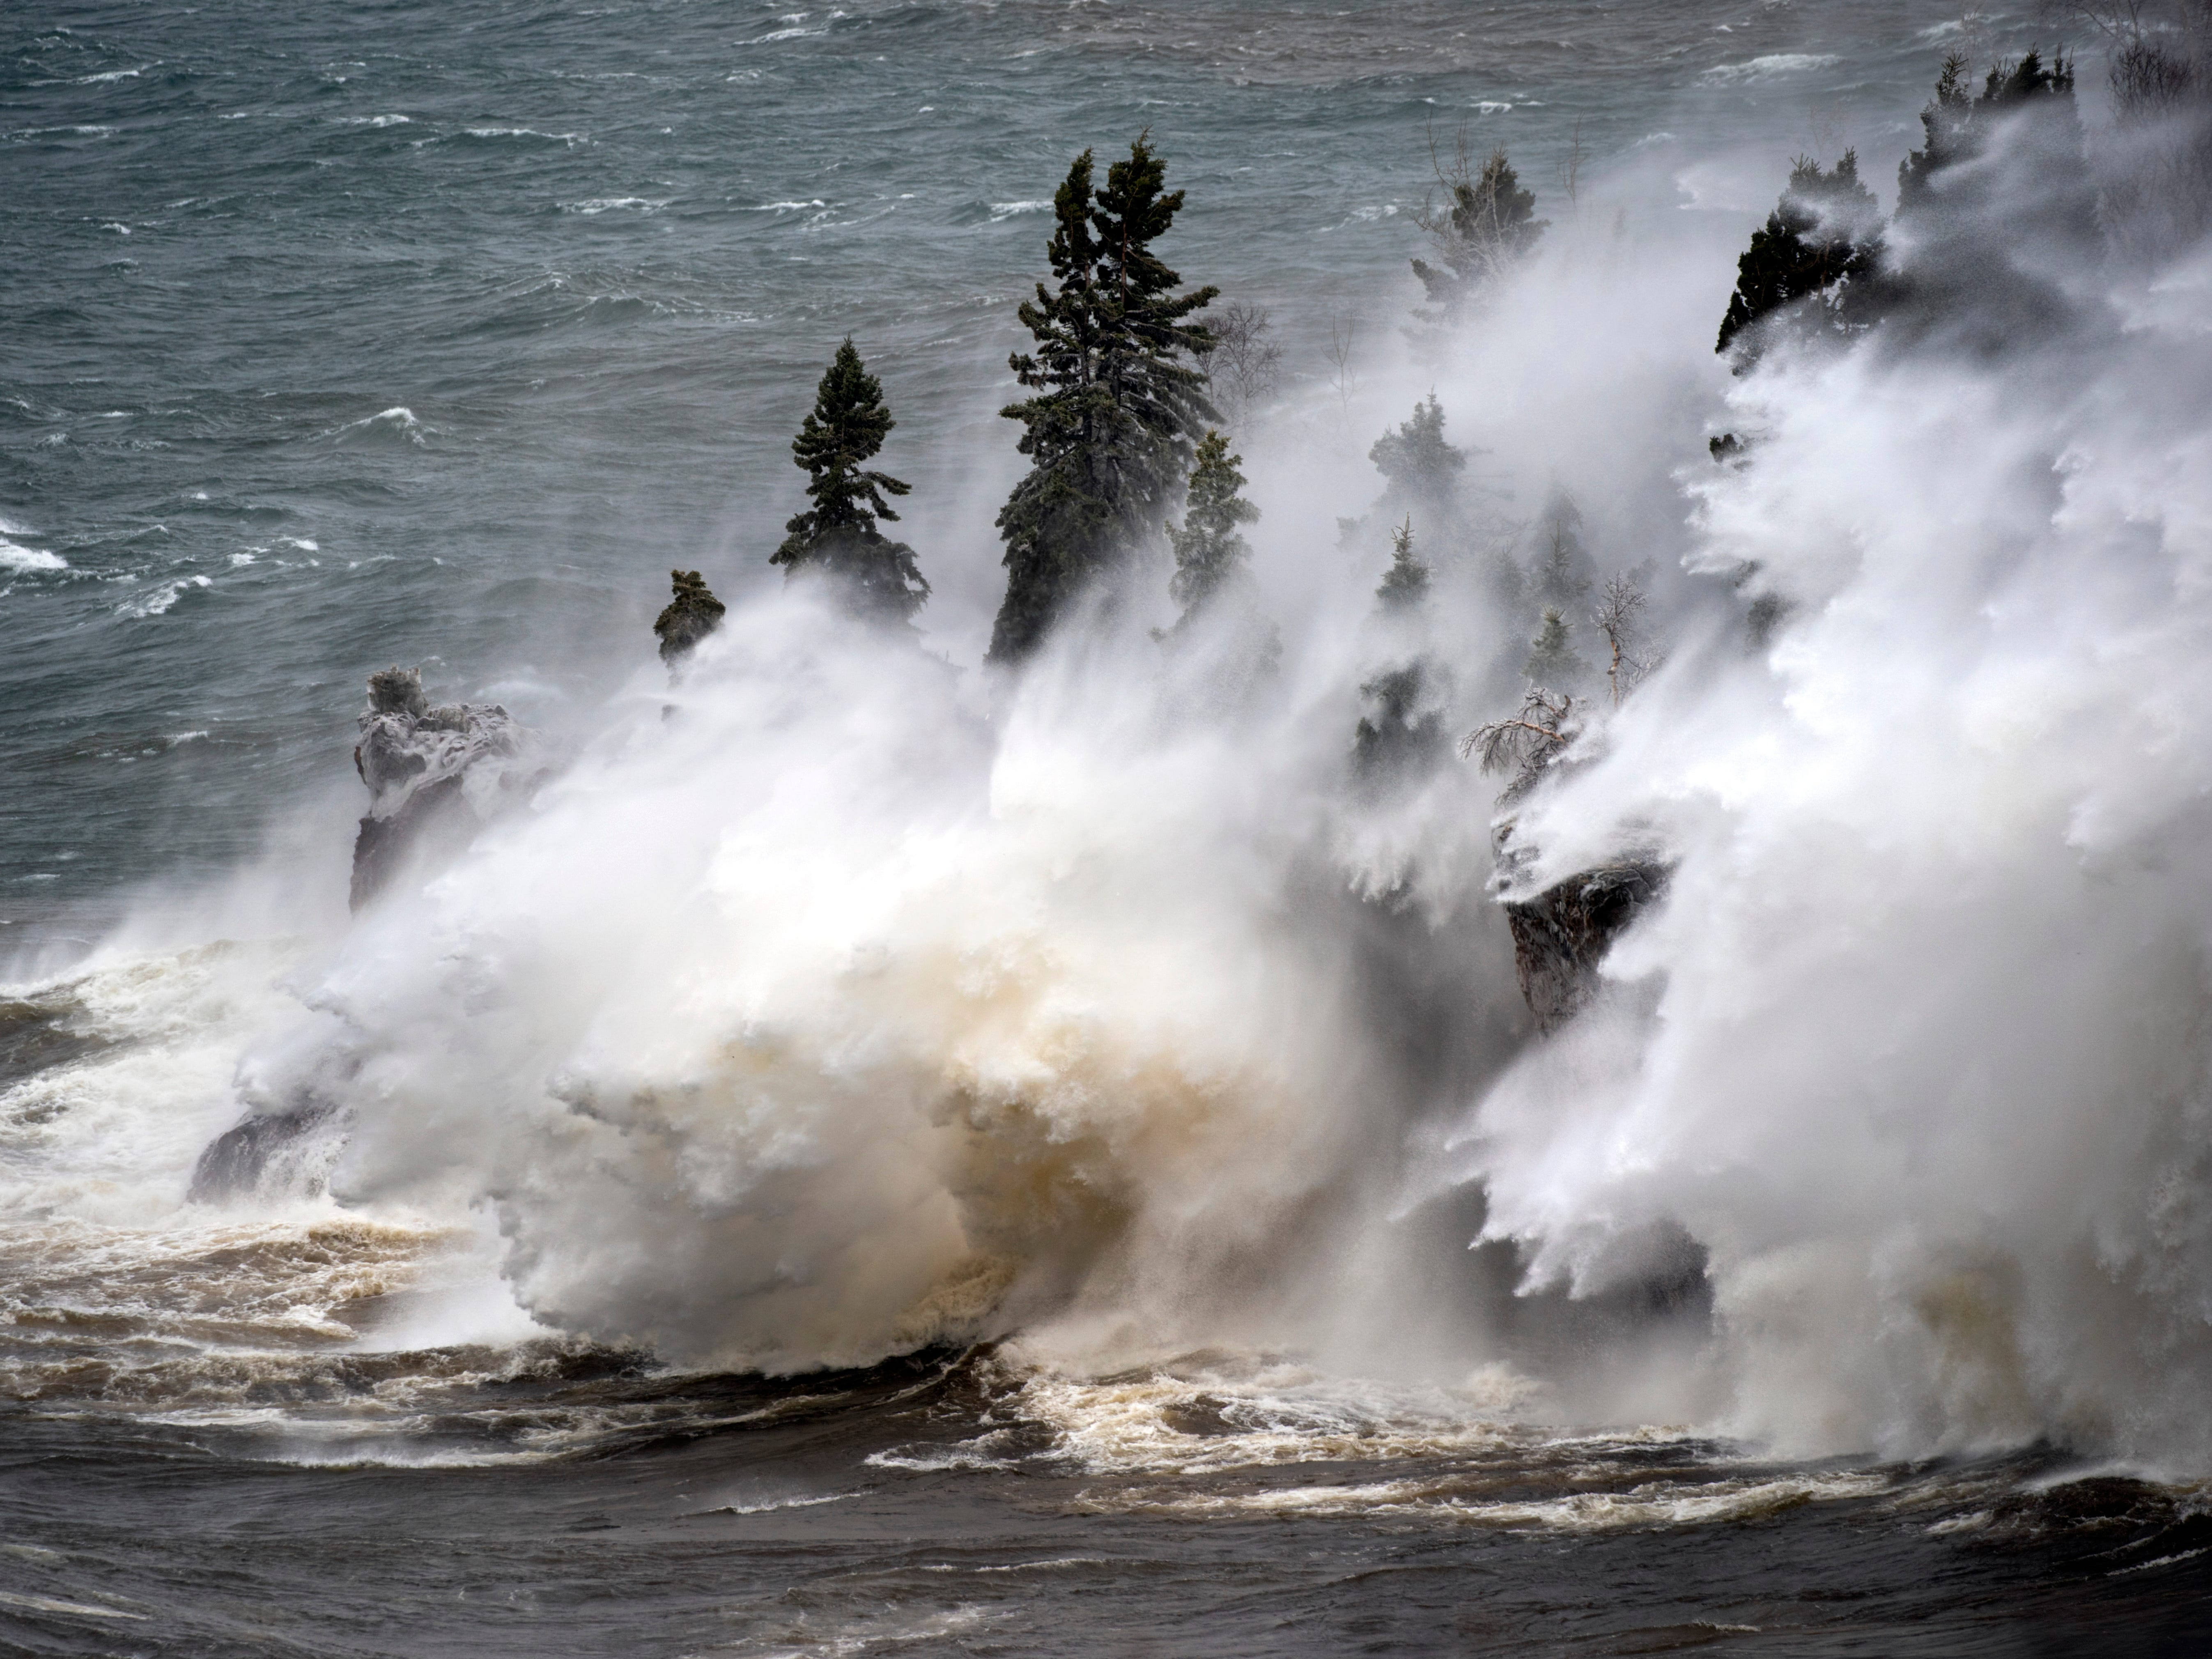 Waves pound the shoreline at Tettegouche State Park Thursday, April 11, 2019 at Silver Bay, Minn. Wind gusts were up to 50 miles per hour.